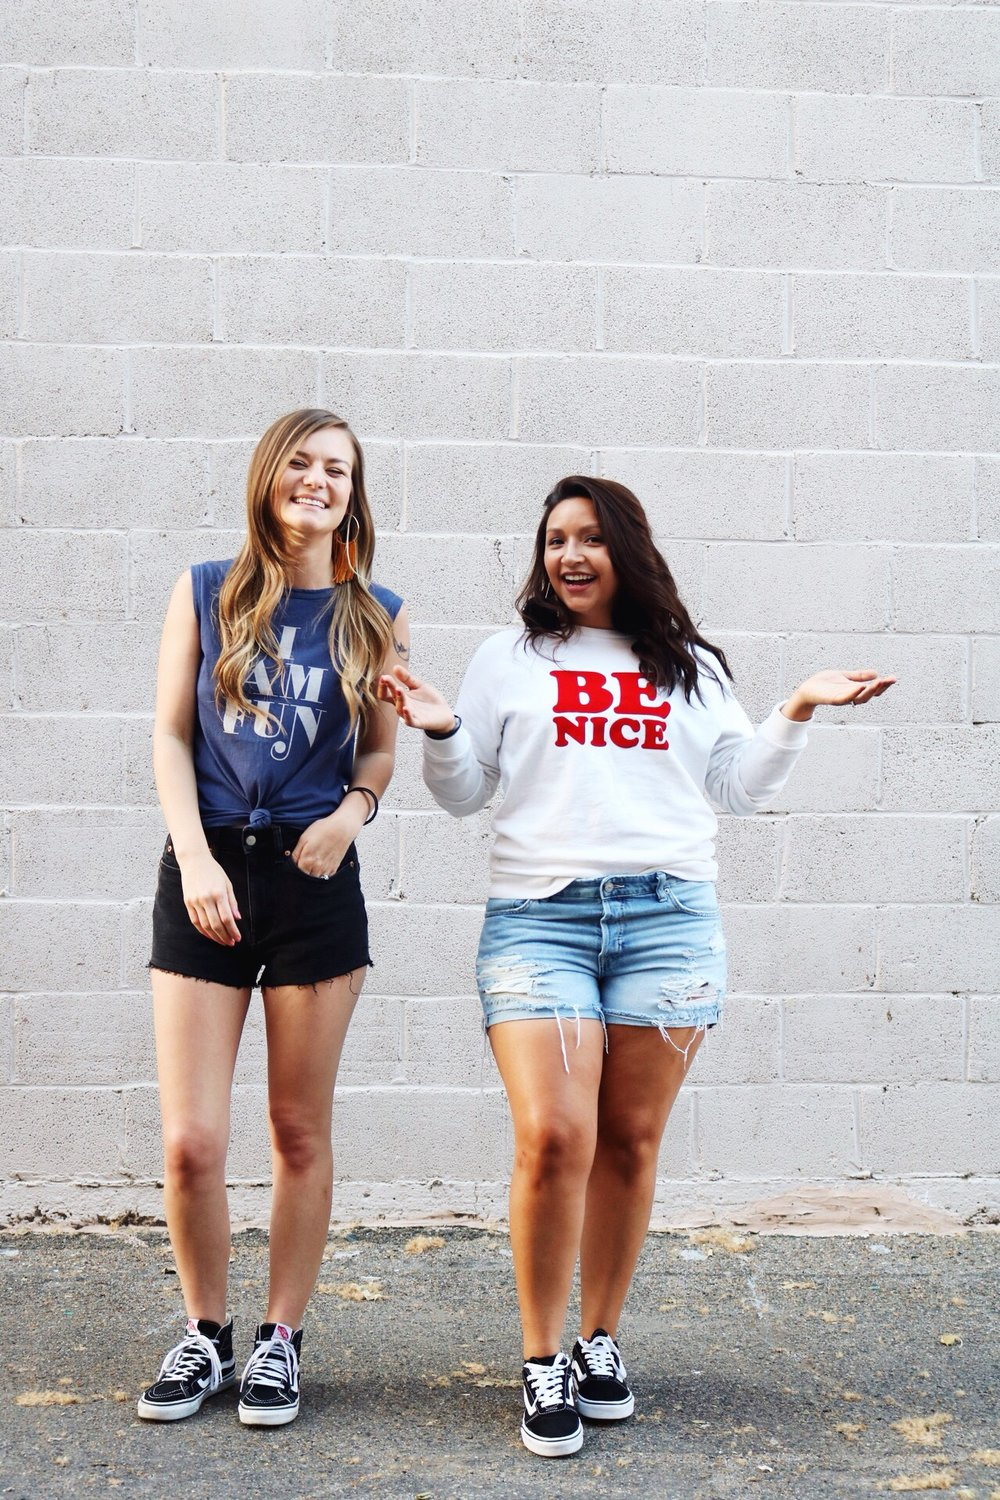 Ban.do Graphic Tees, Black High Top Vans, Confidence, Self-Love, BFF's Laughing